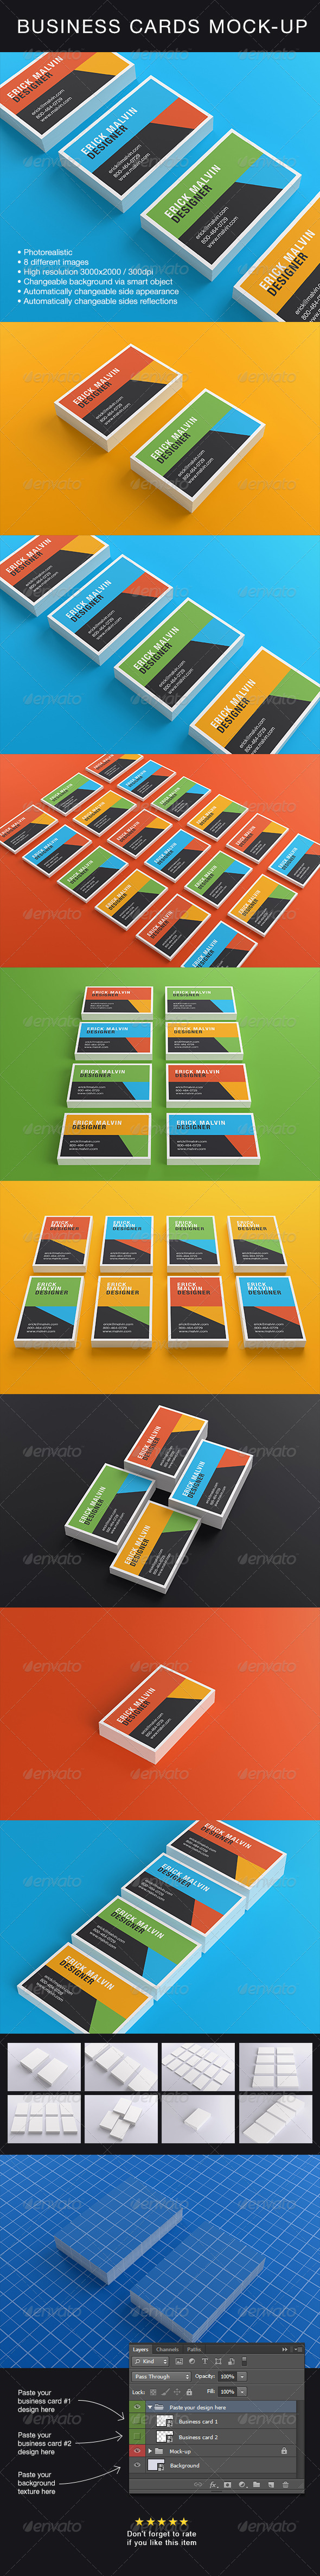 GraphicRiver Business Cards Mock-up [8.5ЎБ5.5 cm] 5587269